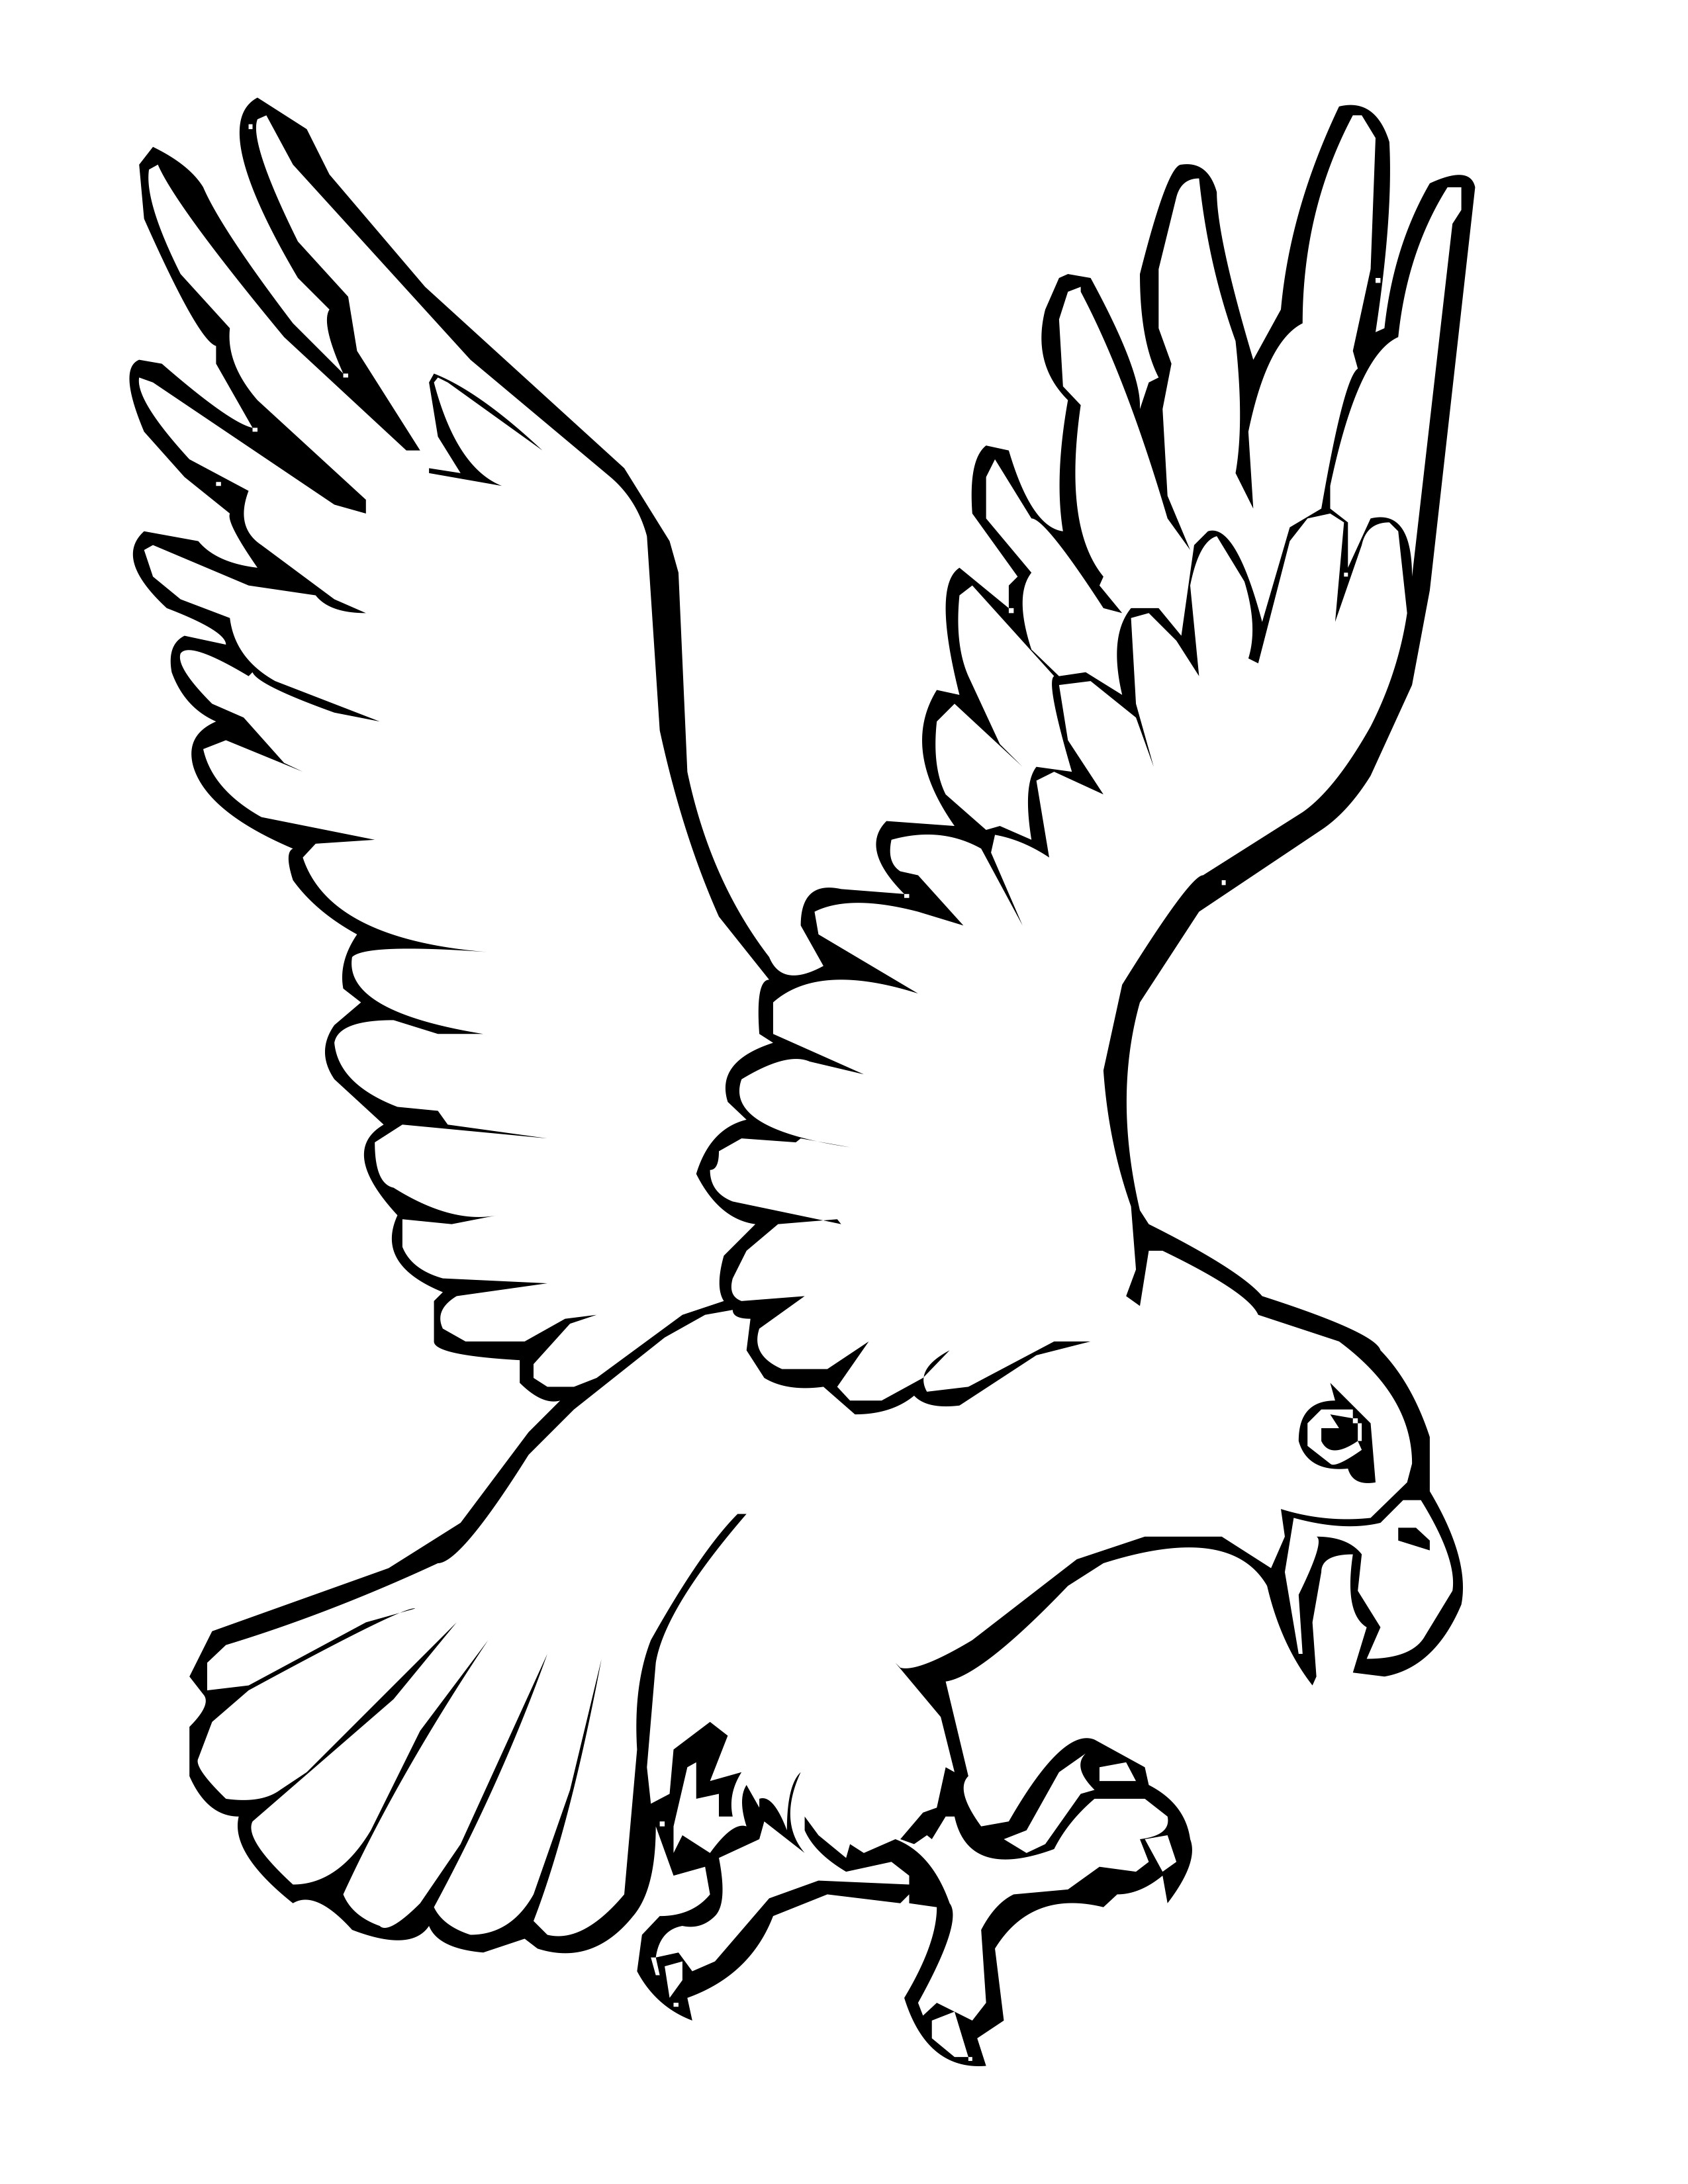 printable pictures of birds bird coloring pages to download and print for free birds printable pictures of